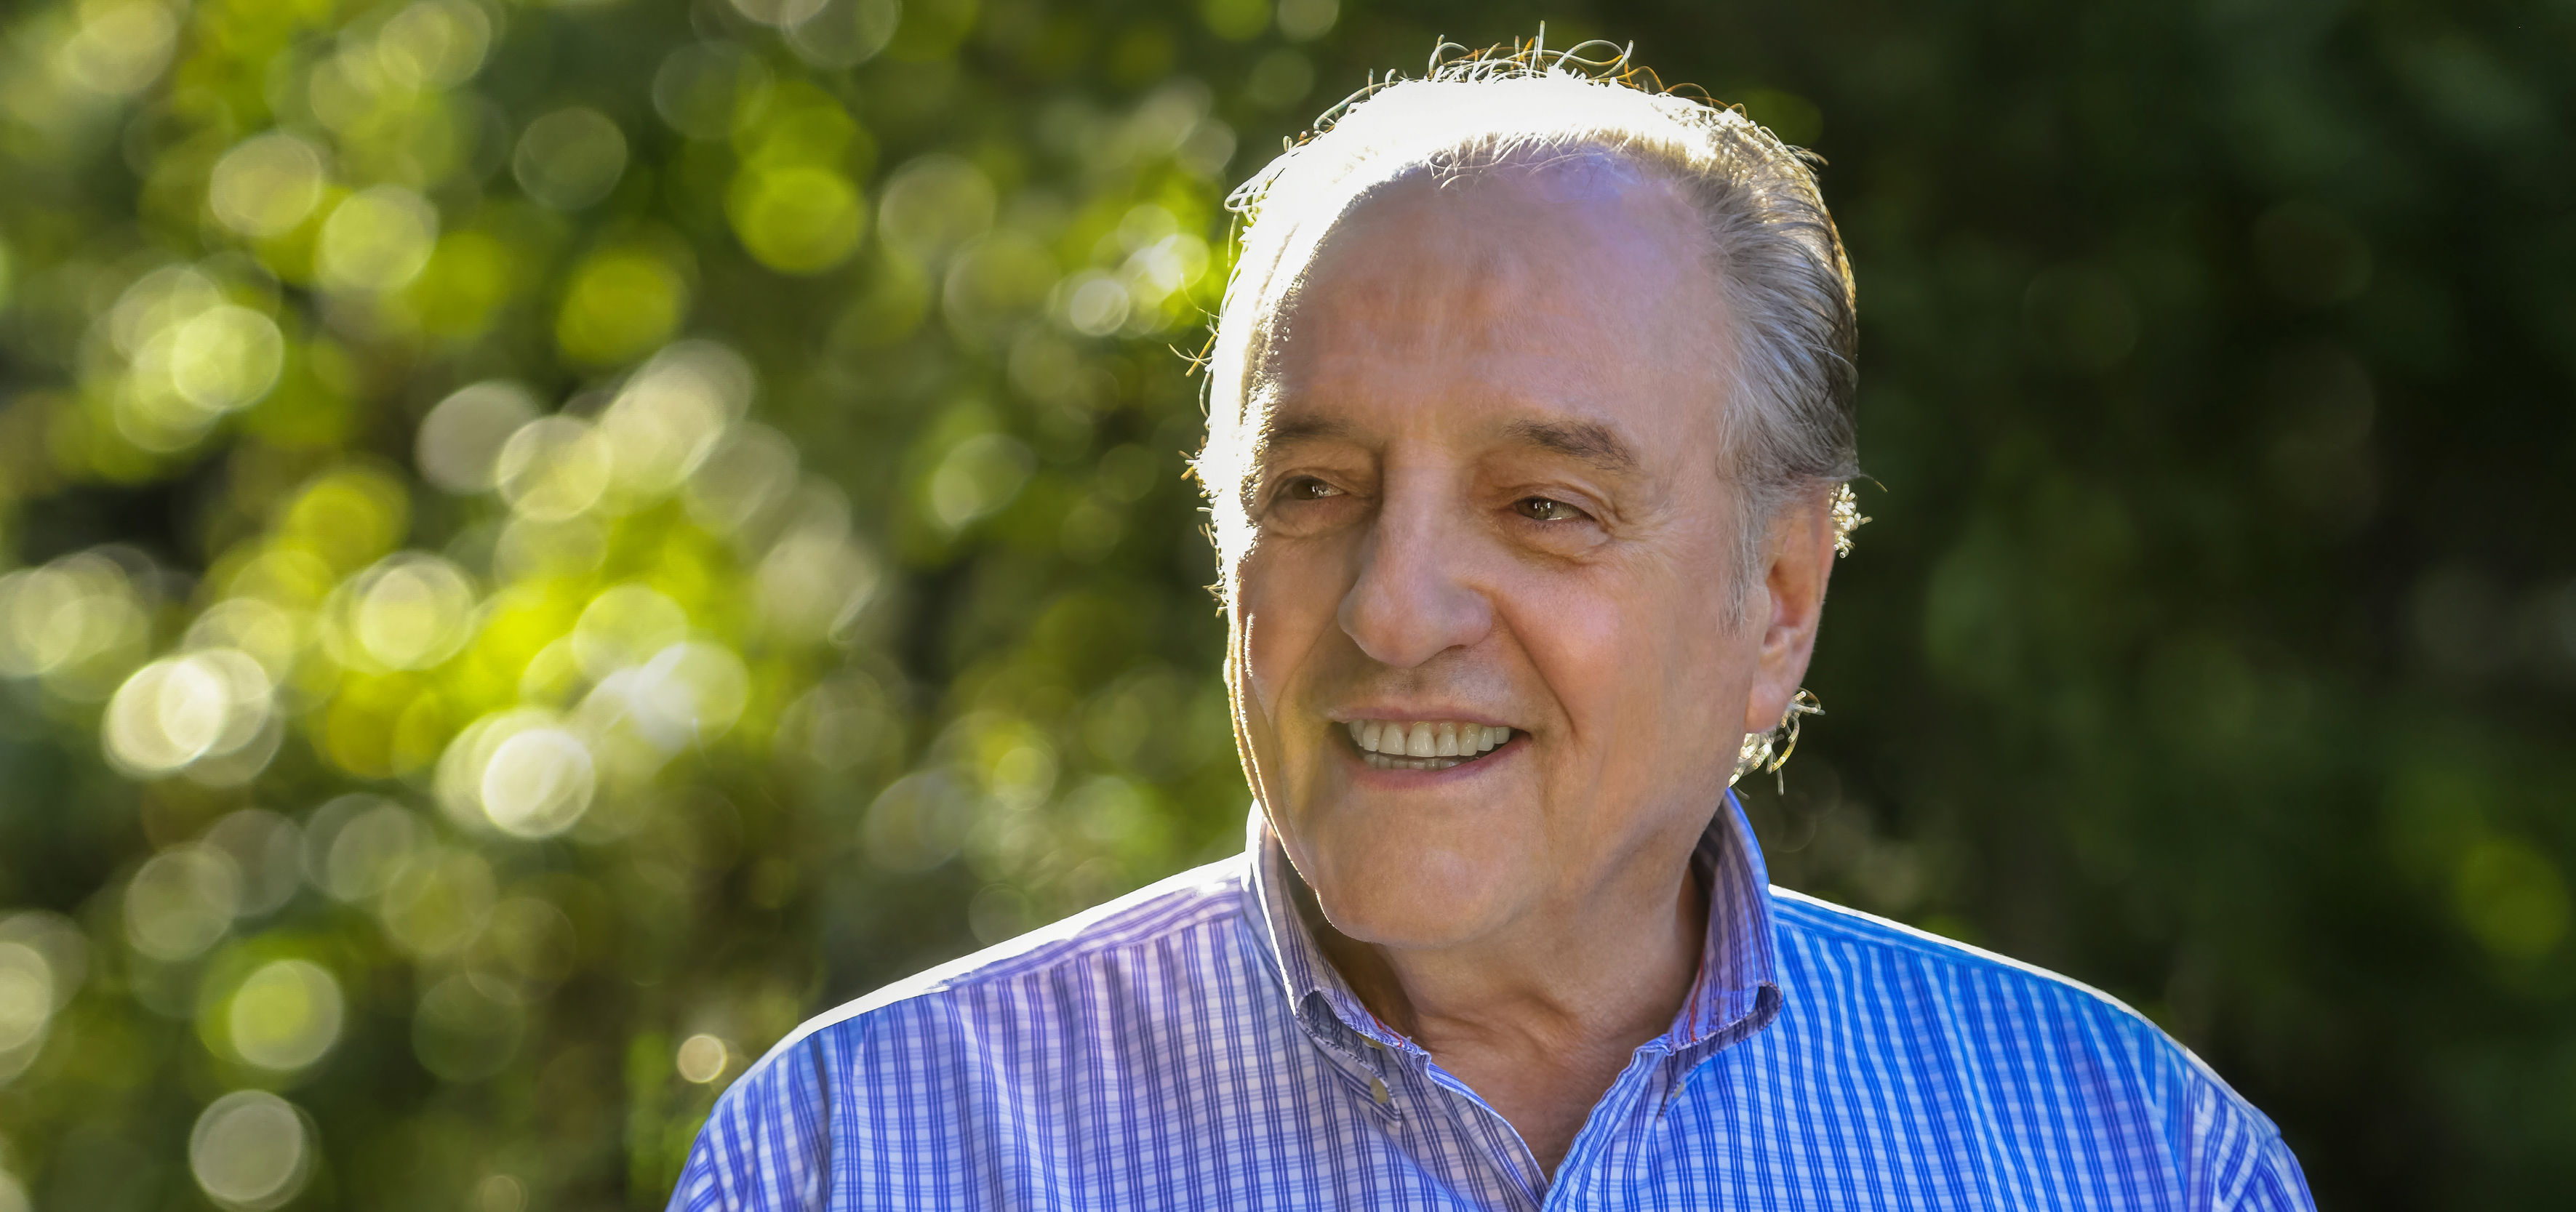 Carlos Heller